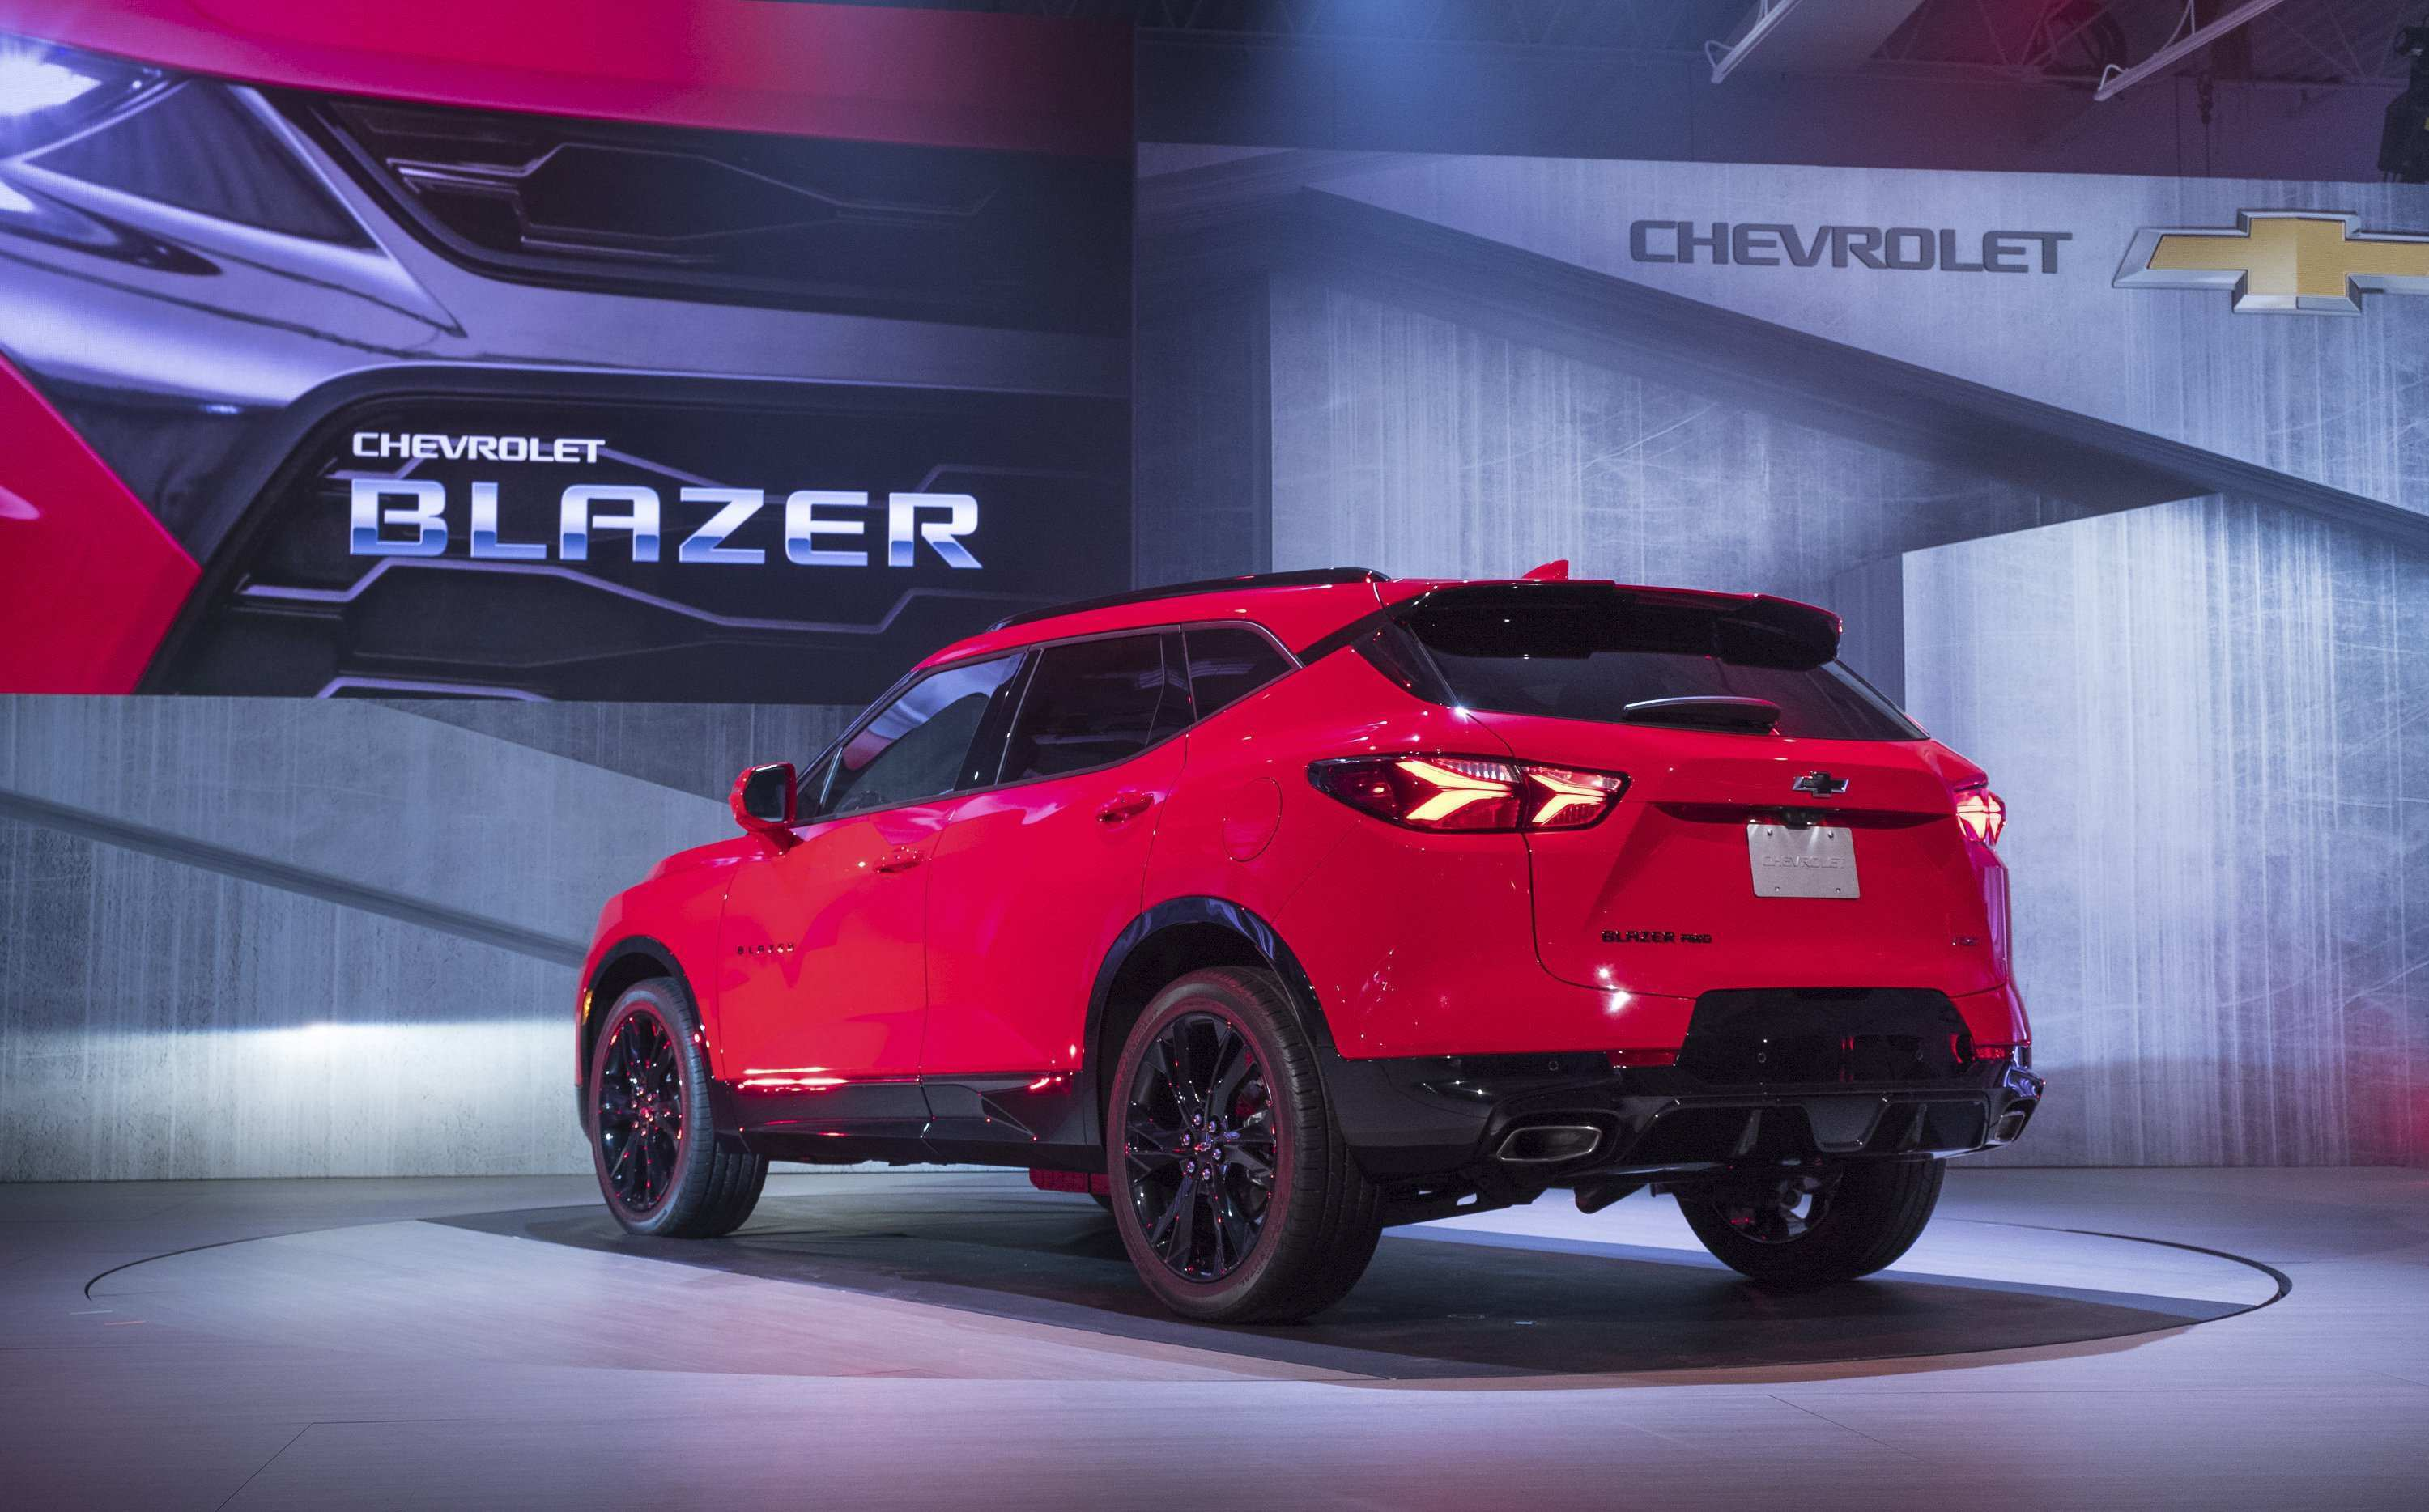 42 Great The Chevrolet 2019 Zr2 New Concept Performance and New Engine for The Chevrolet 2019 Zr2 New Concept